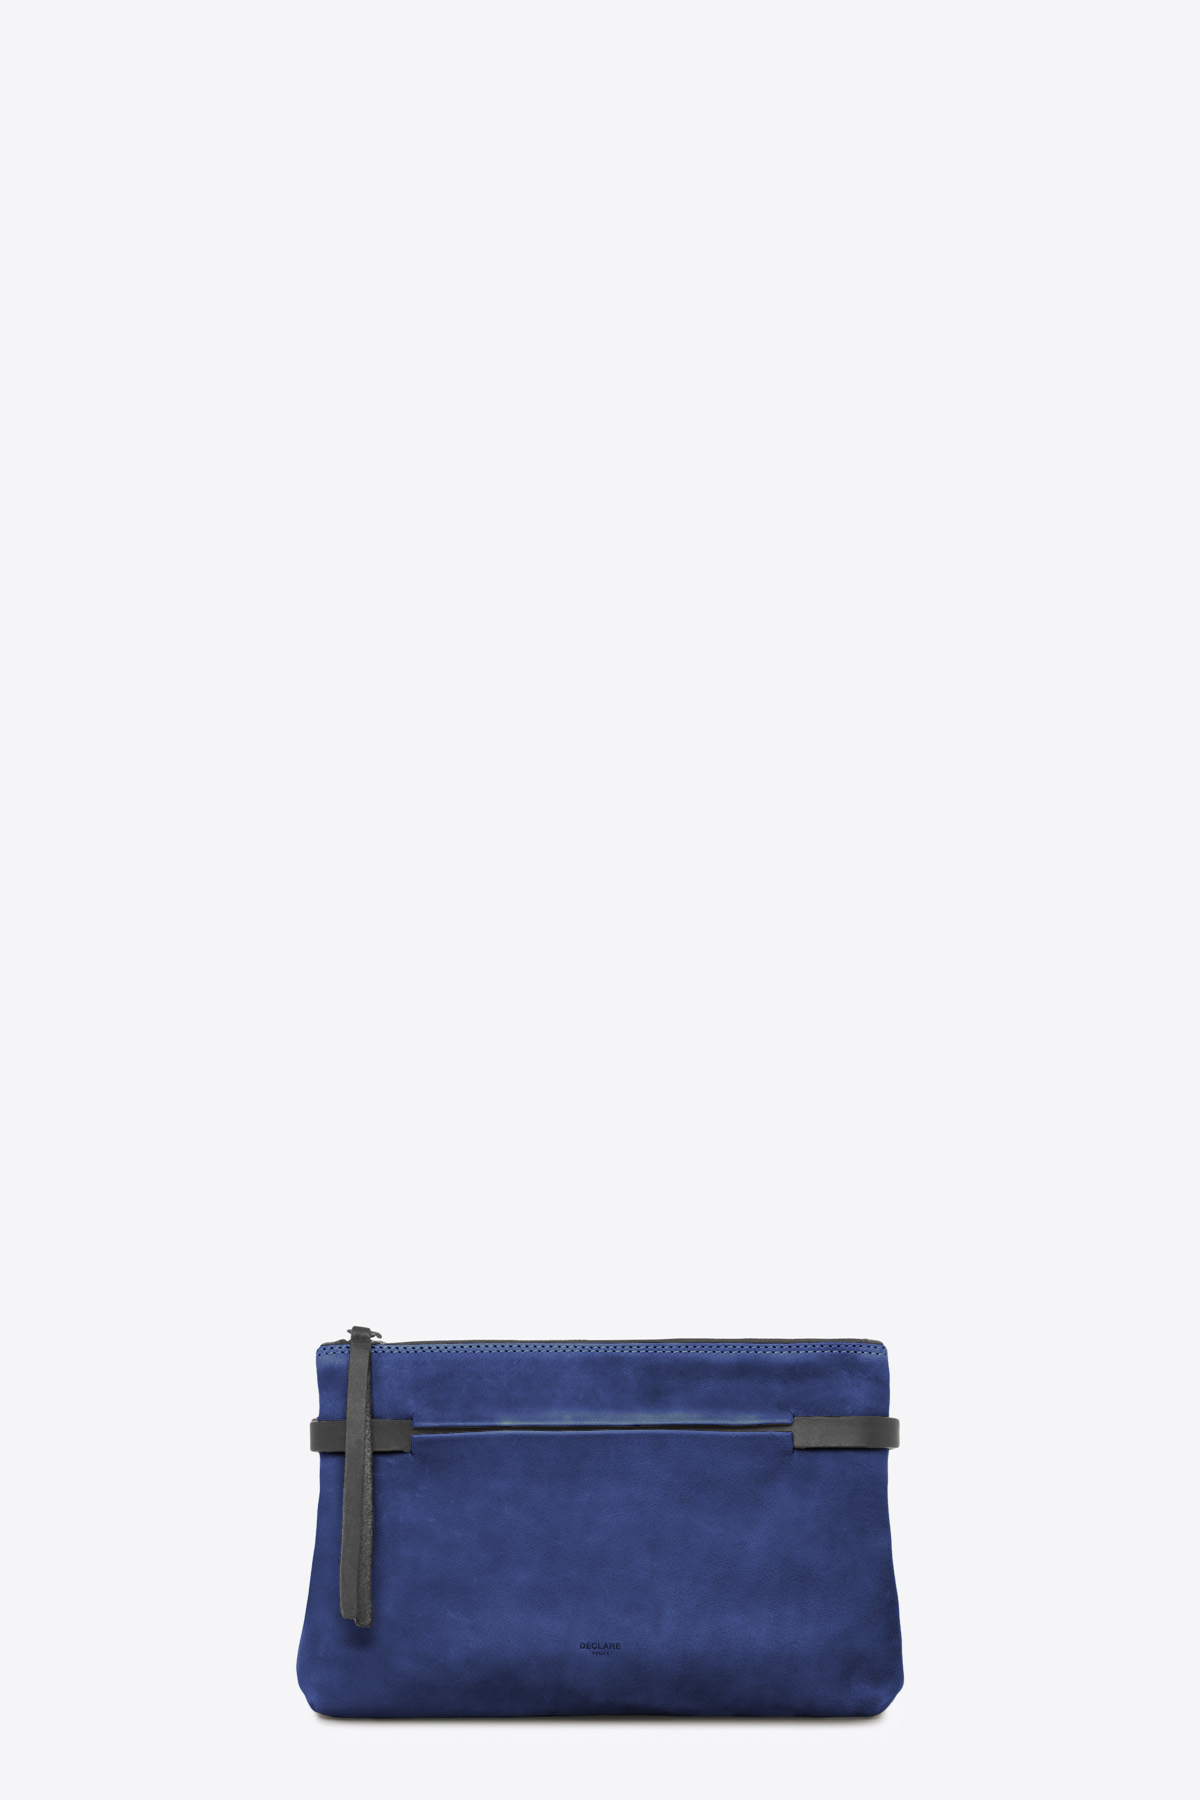 dclr004s-tapeclutch-a20-royalblue-front